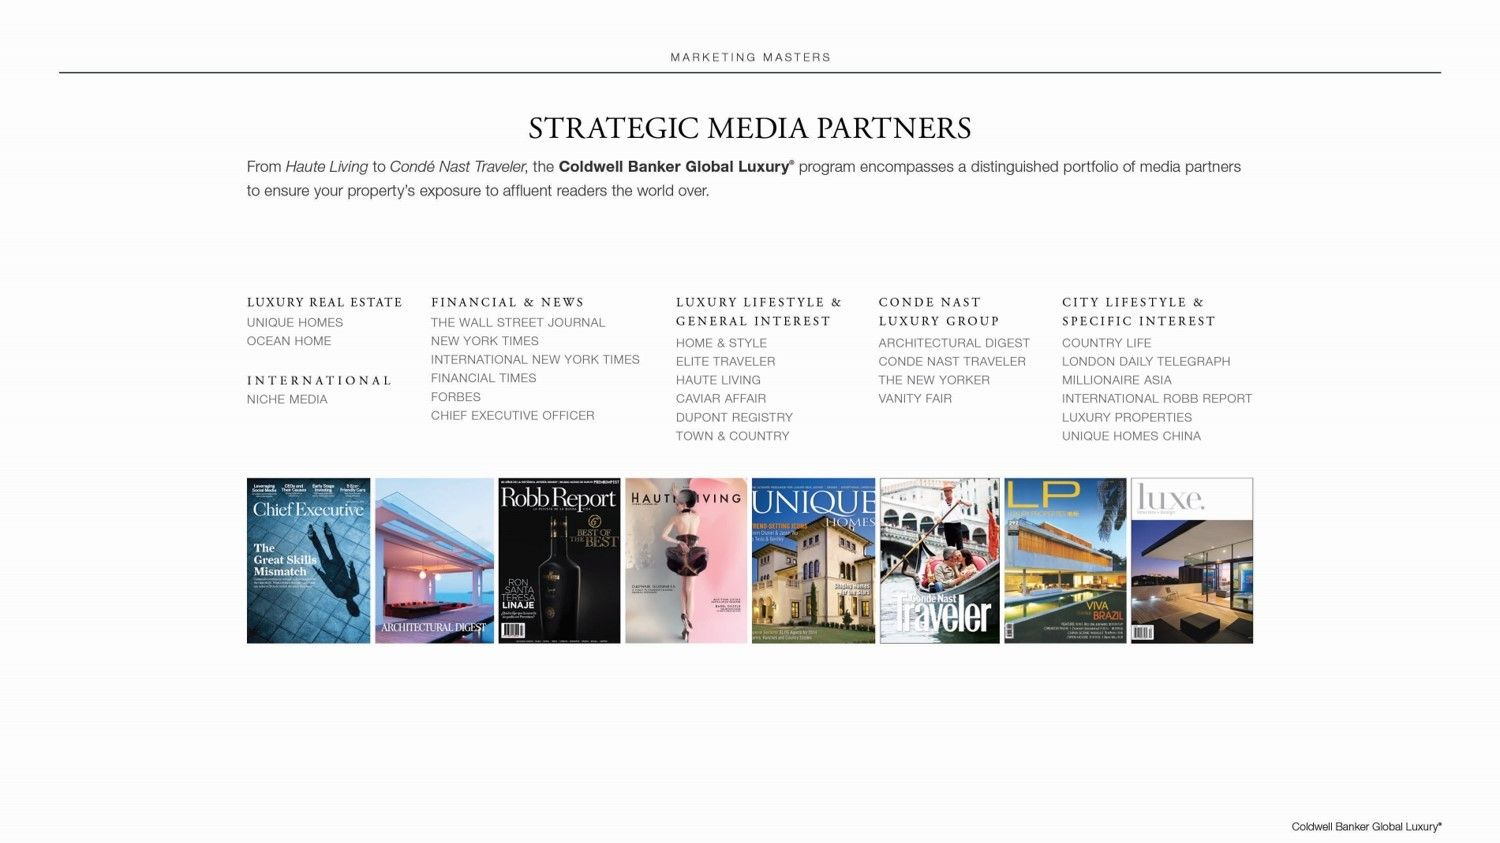 coldwell-banker-global-luxury-strategic-media-partnerships-2